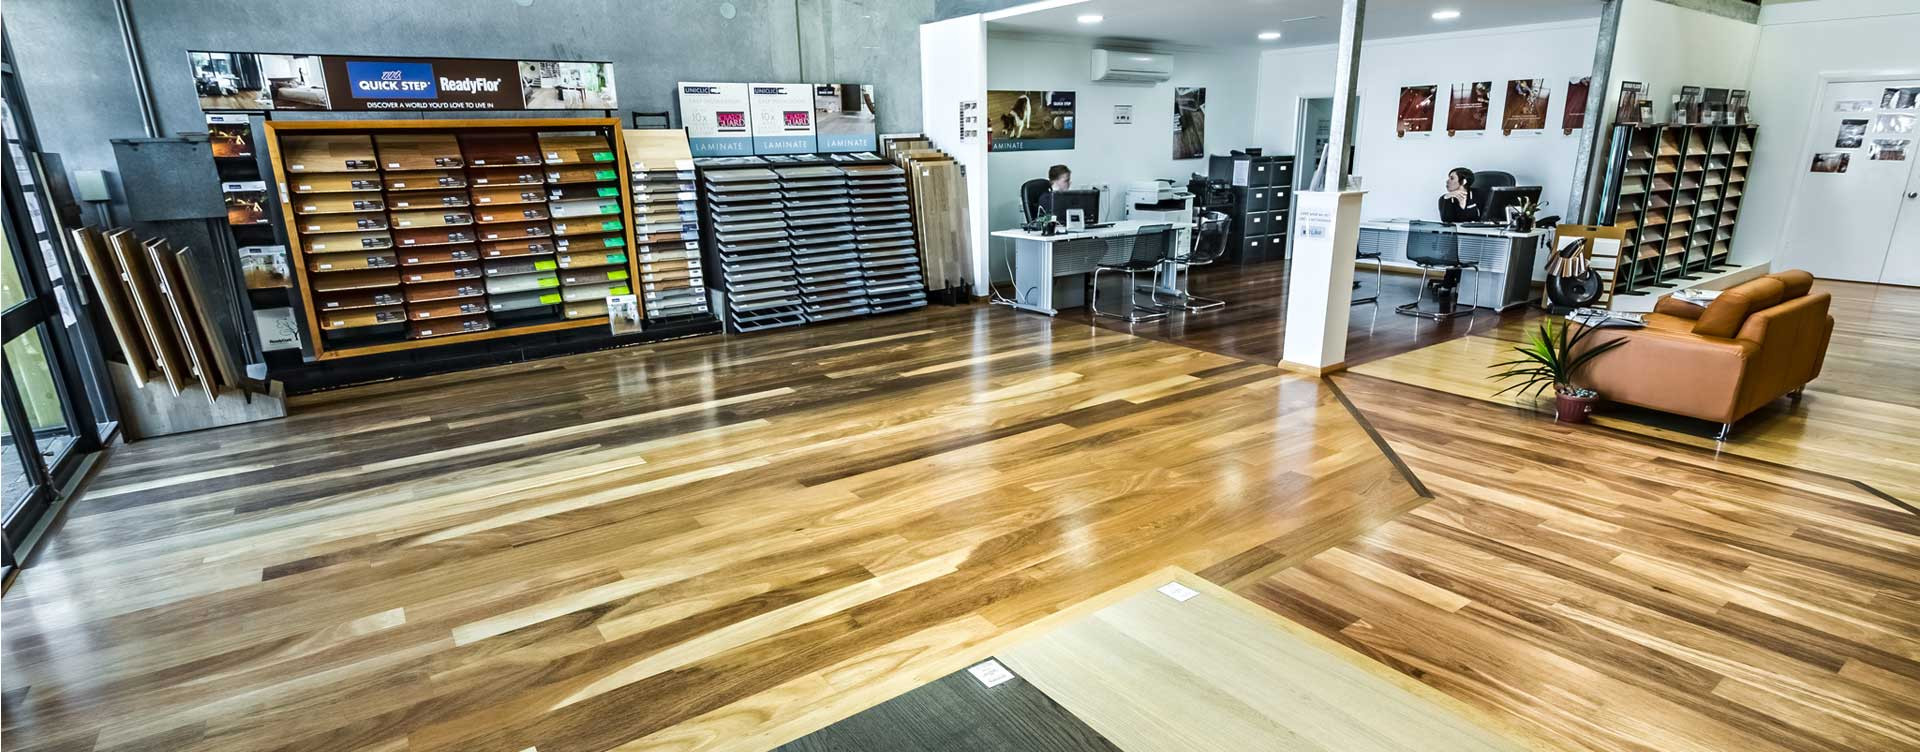 glue down versus floating hardwood floor of timber flooring perth coastal flooring wa quality wooden in thats why they call us the home of fine wood floors